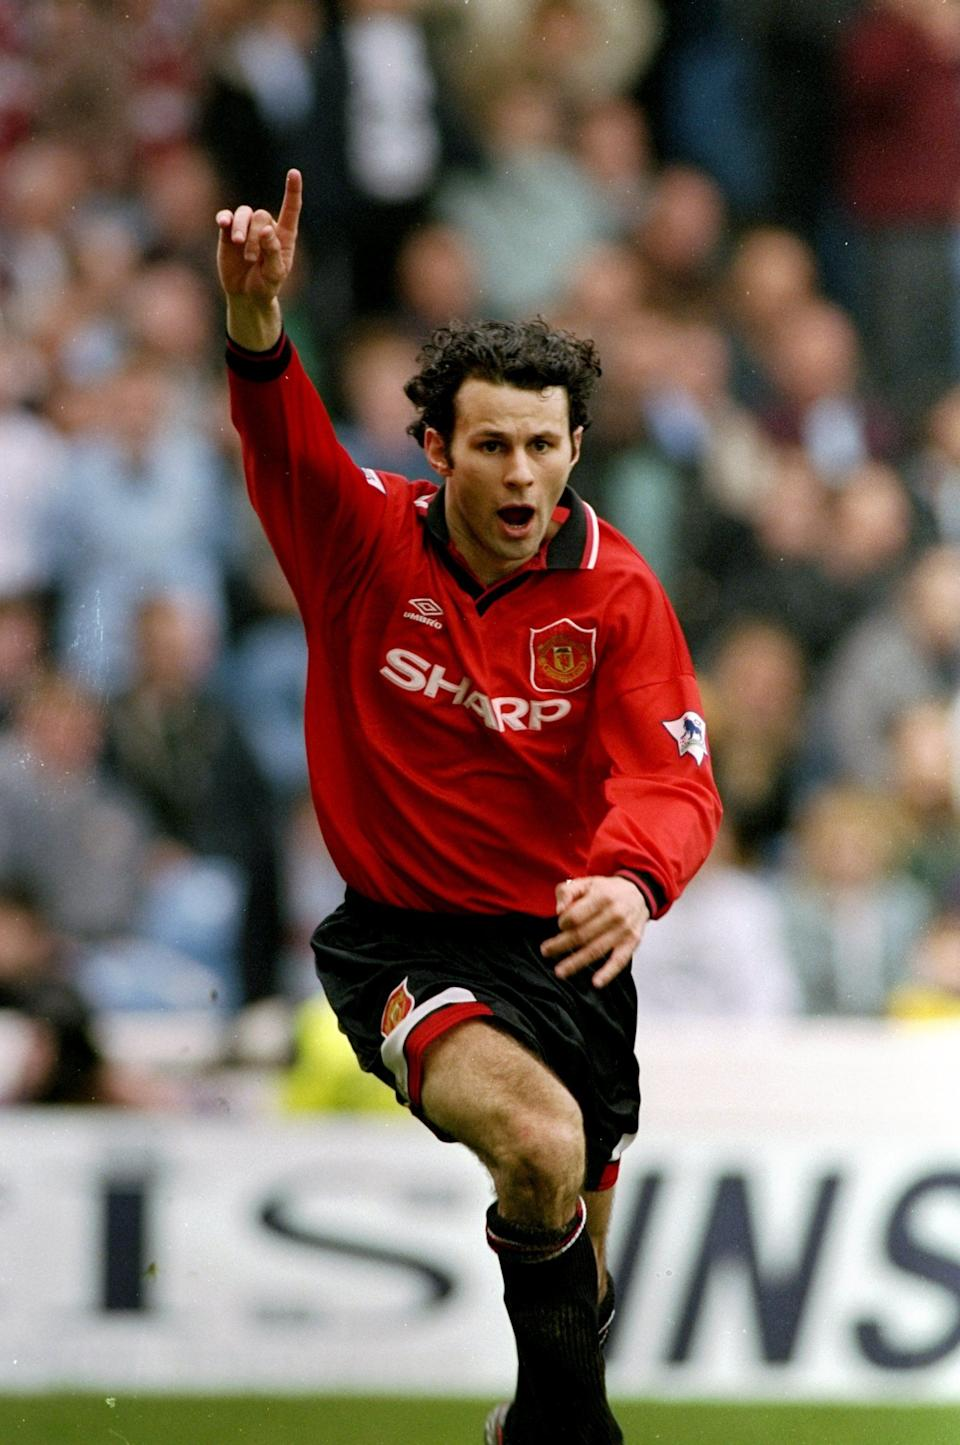 Ryan Giggs of Manchester United celebrates during an FA Carling Premiership match against Manchester City at Maine Road.